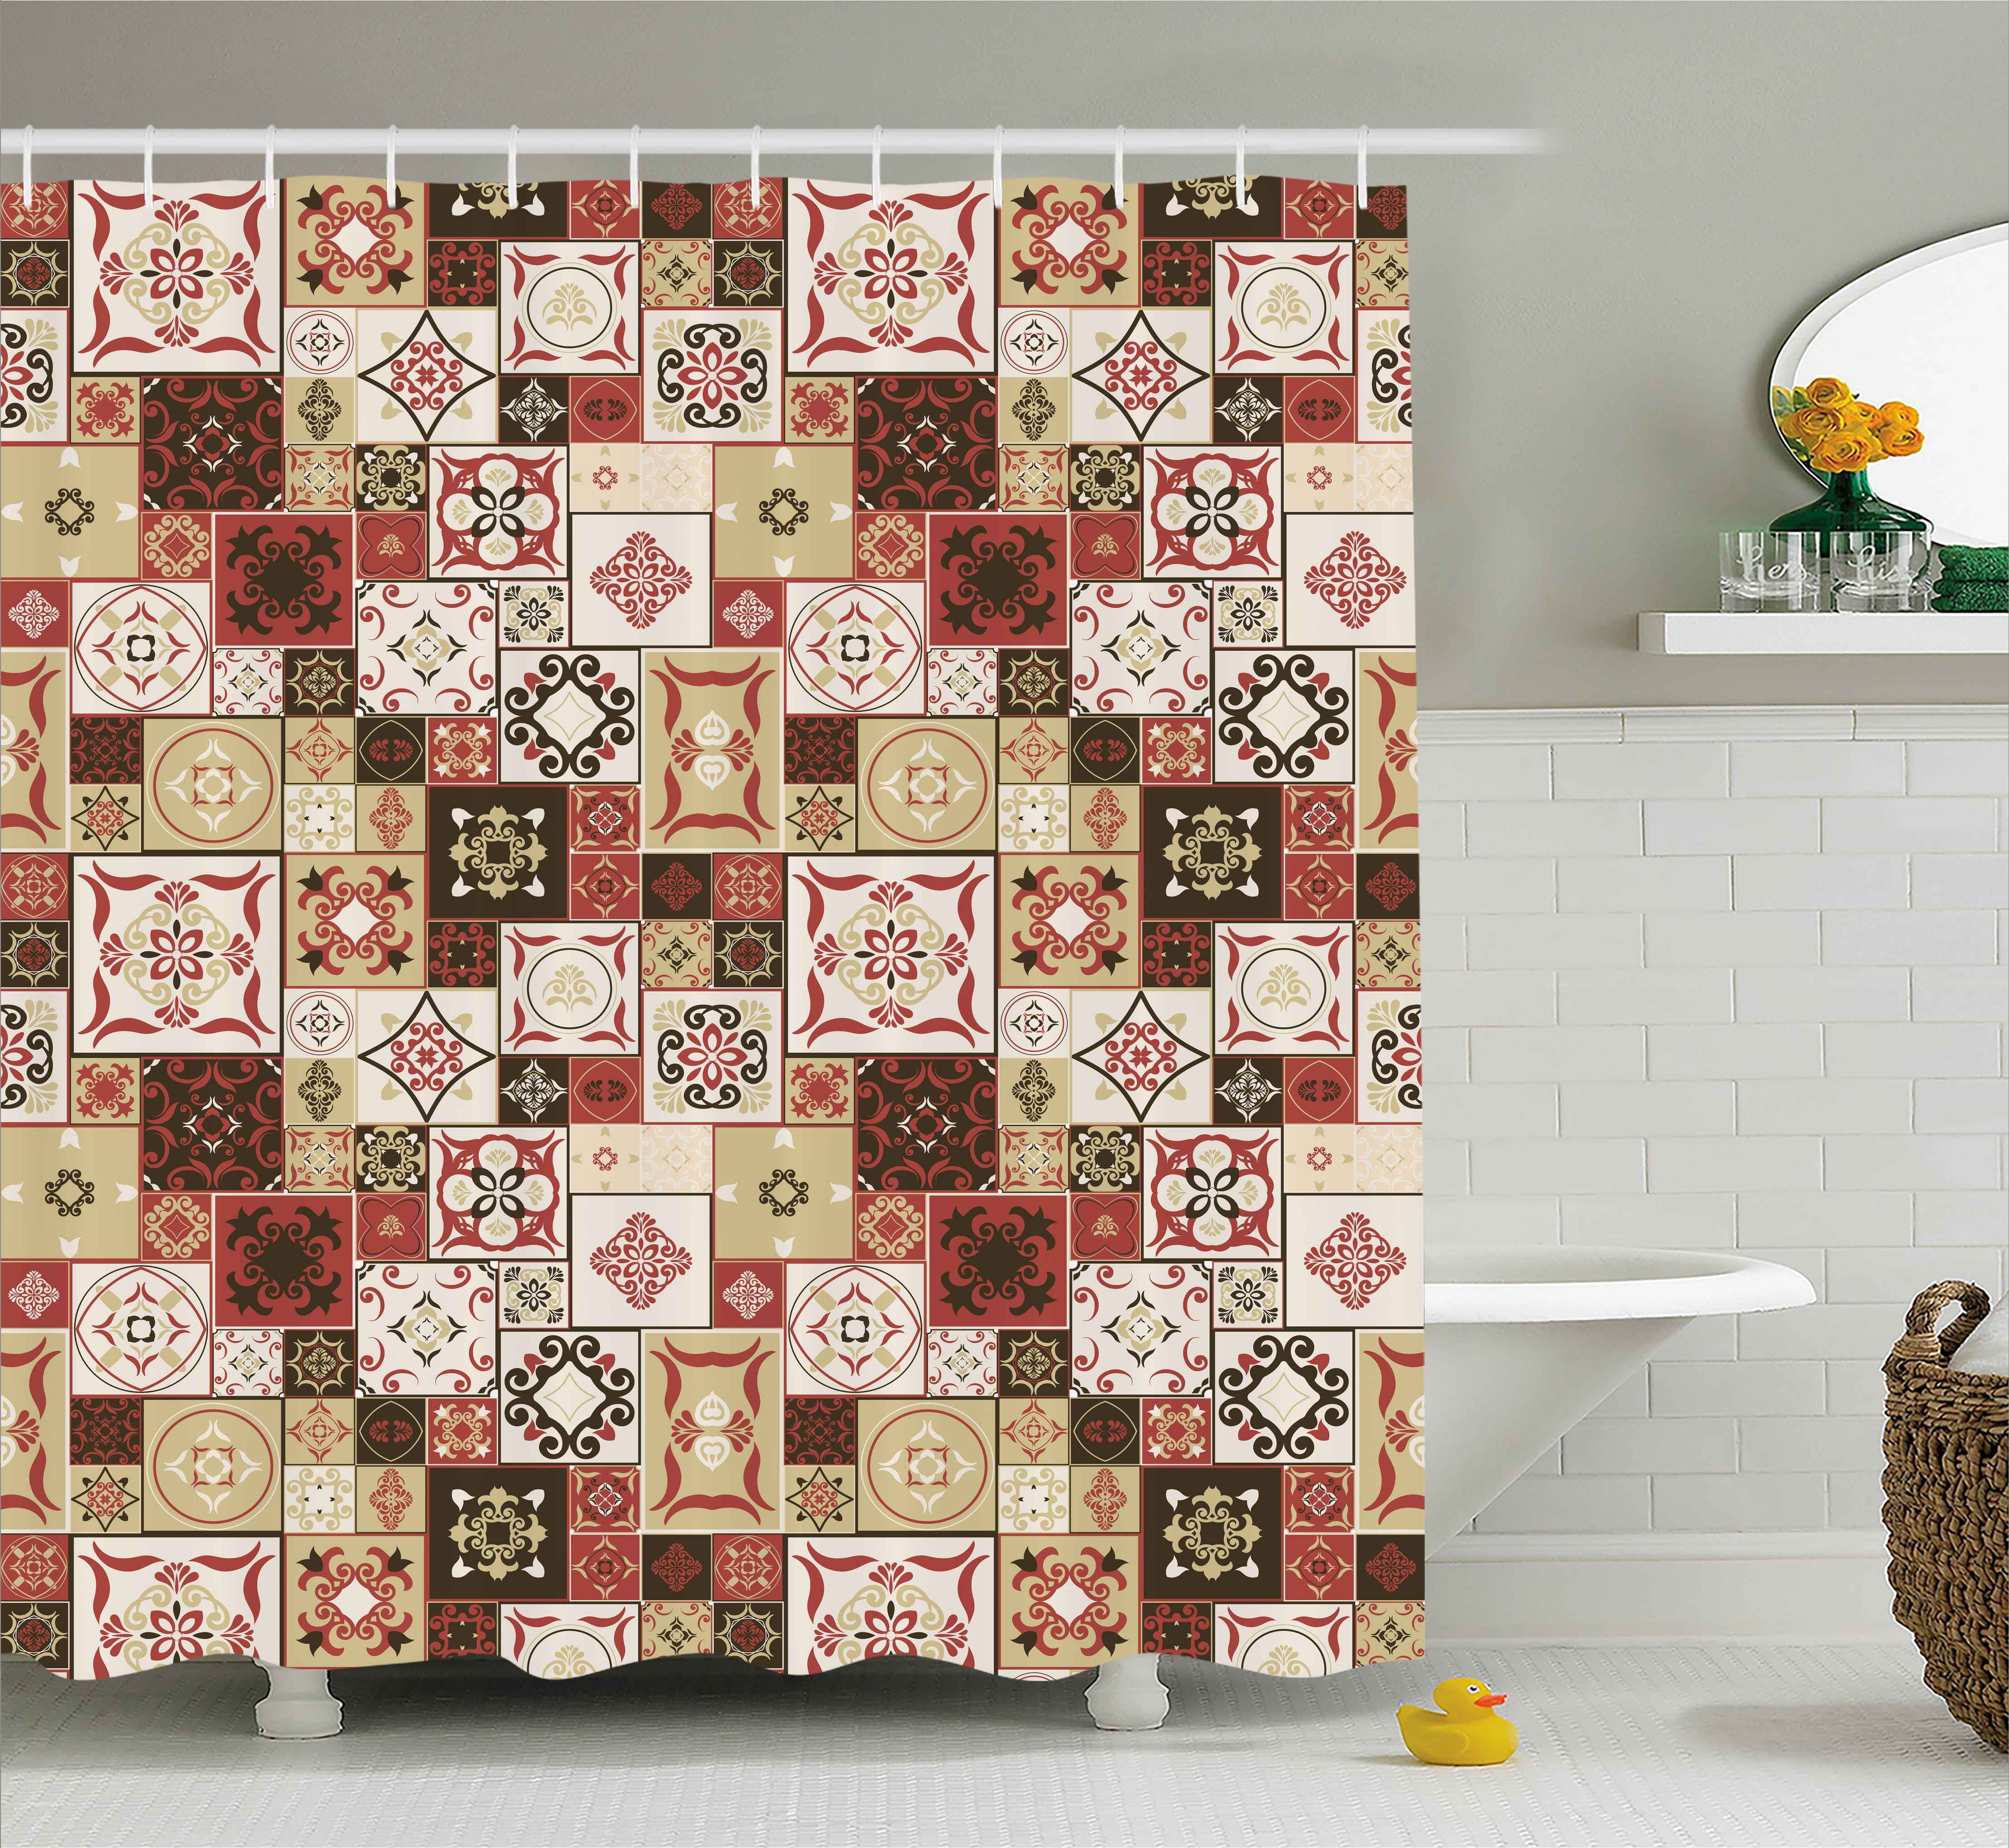 Moroccan Shower Curtain, Tile Pattern with Squares of Various Sizes Eastern Inspired Oriental, Fabric Bathroom Set with Hooks, 69W X 70L Inches, Cream Dark Coral Brown, by Ambesonne